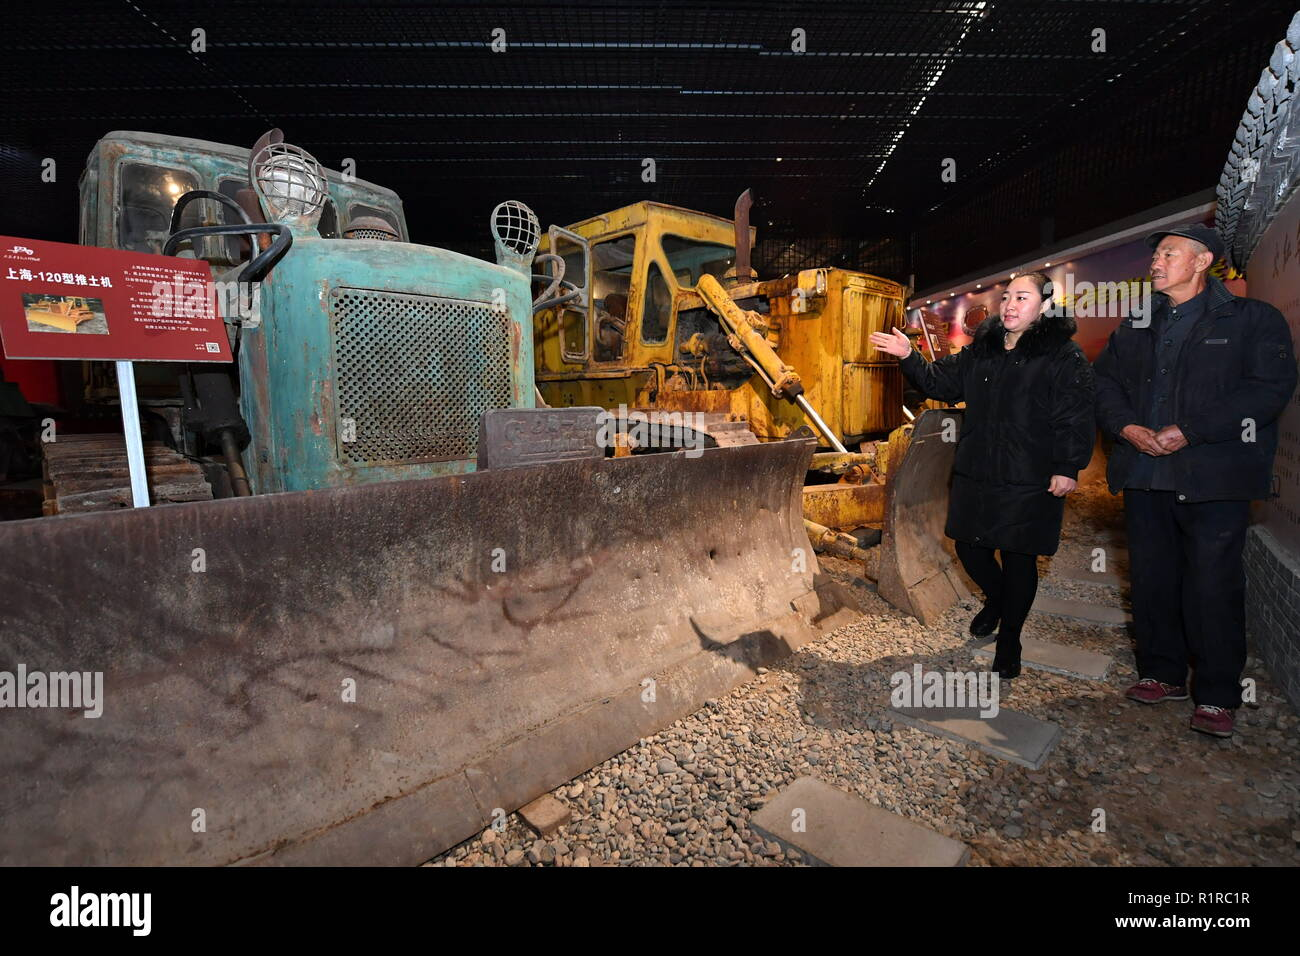 Taiyuan, China's Shanxi Province. 14th Nov, 2018. A narrator introduces bulldozers at a museum specialized in old vehicles in Taiyuan, capital of north China's Shanxi Province, Nov. 14, 2018. Nearly 400 old vehicles and bicycles are exhibited at the museum. Credit: Cao Yang/Xinhua/Alamy Live News - Stock Image